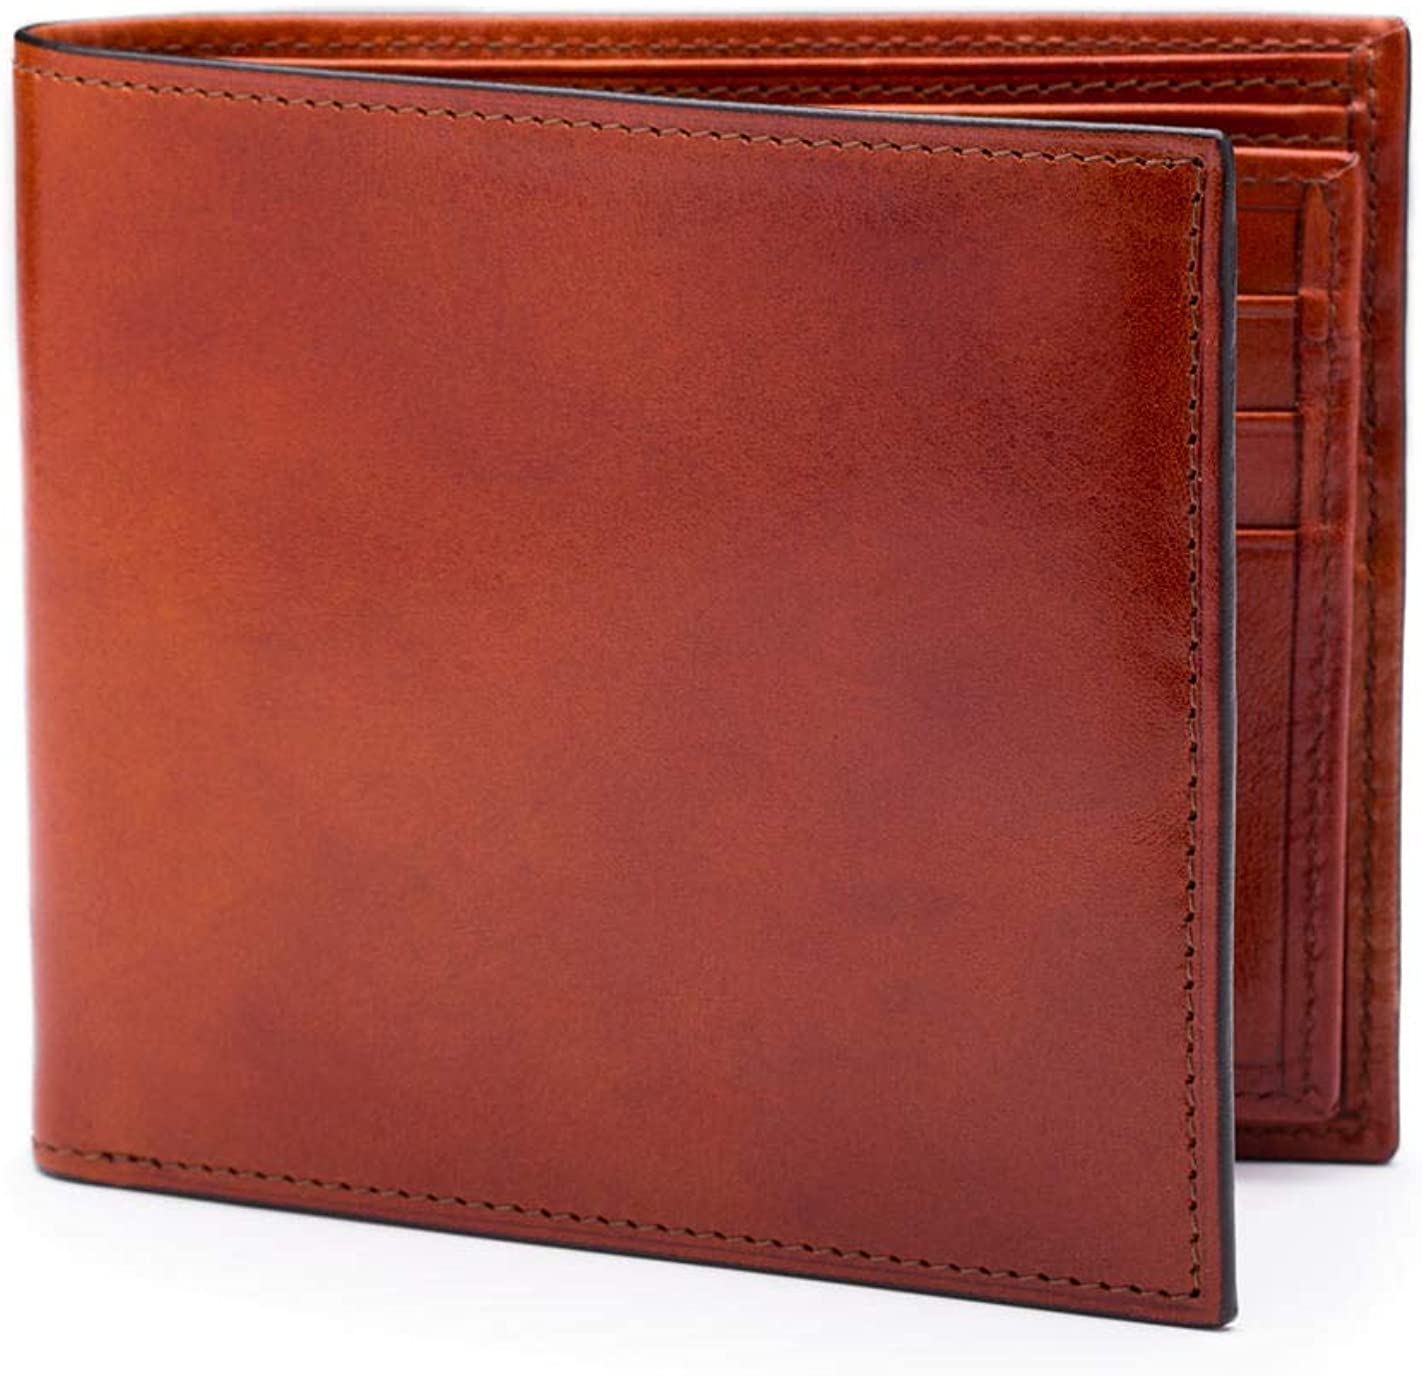 Bosca Old Leather Collection - Eight-Pocket Deluxe Executive Wallet w/Passcase